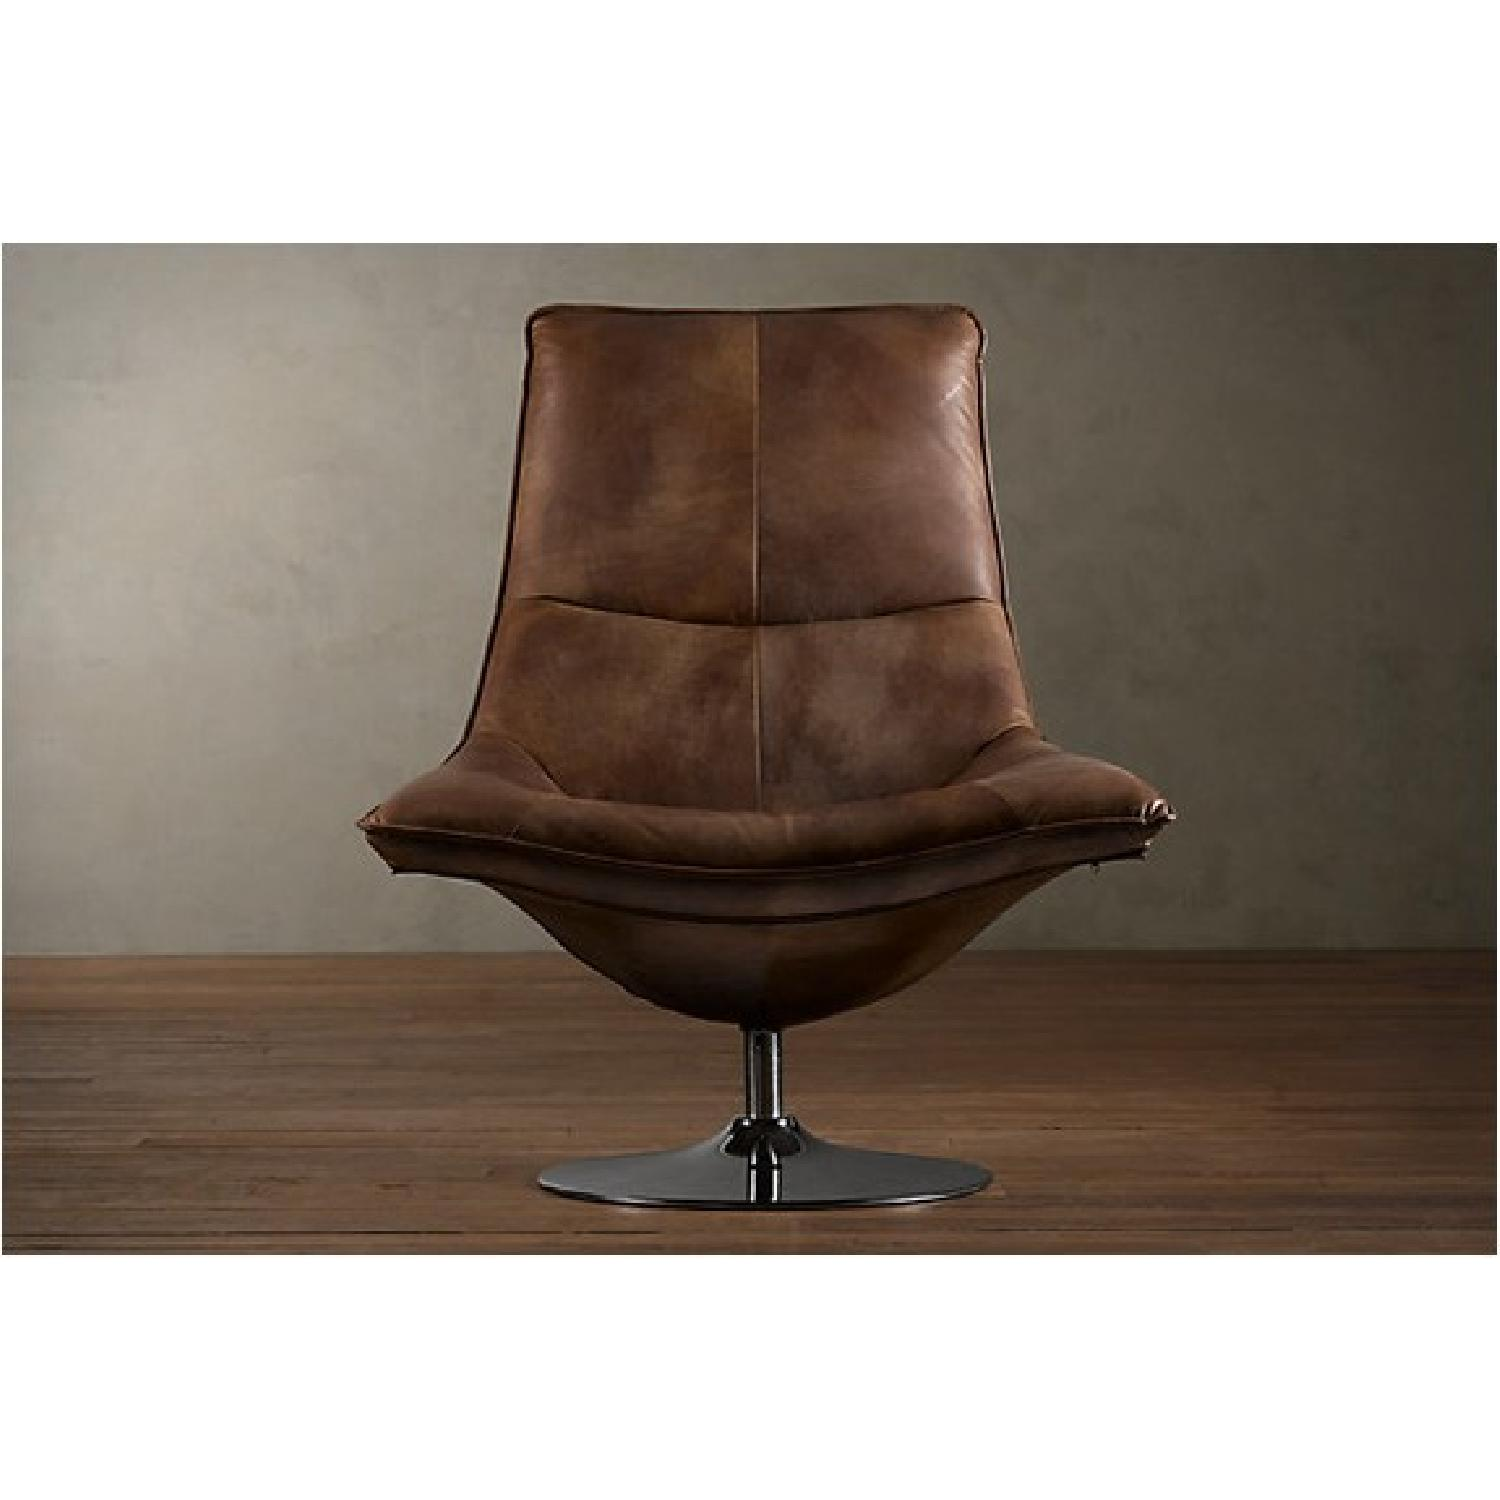 Restoration Hardware Leather Chairs Restoration Hardware Leather Hopper Bucket Chair In Chestnut